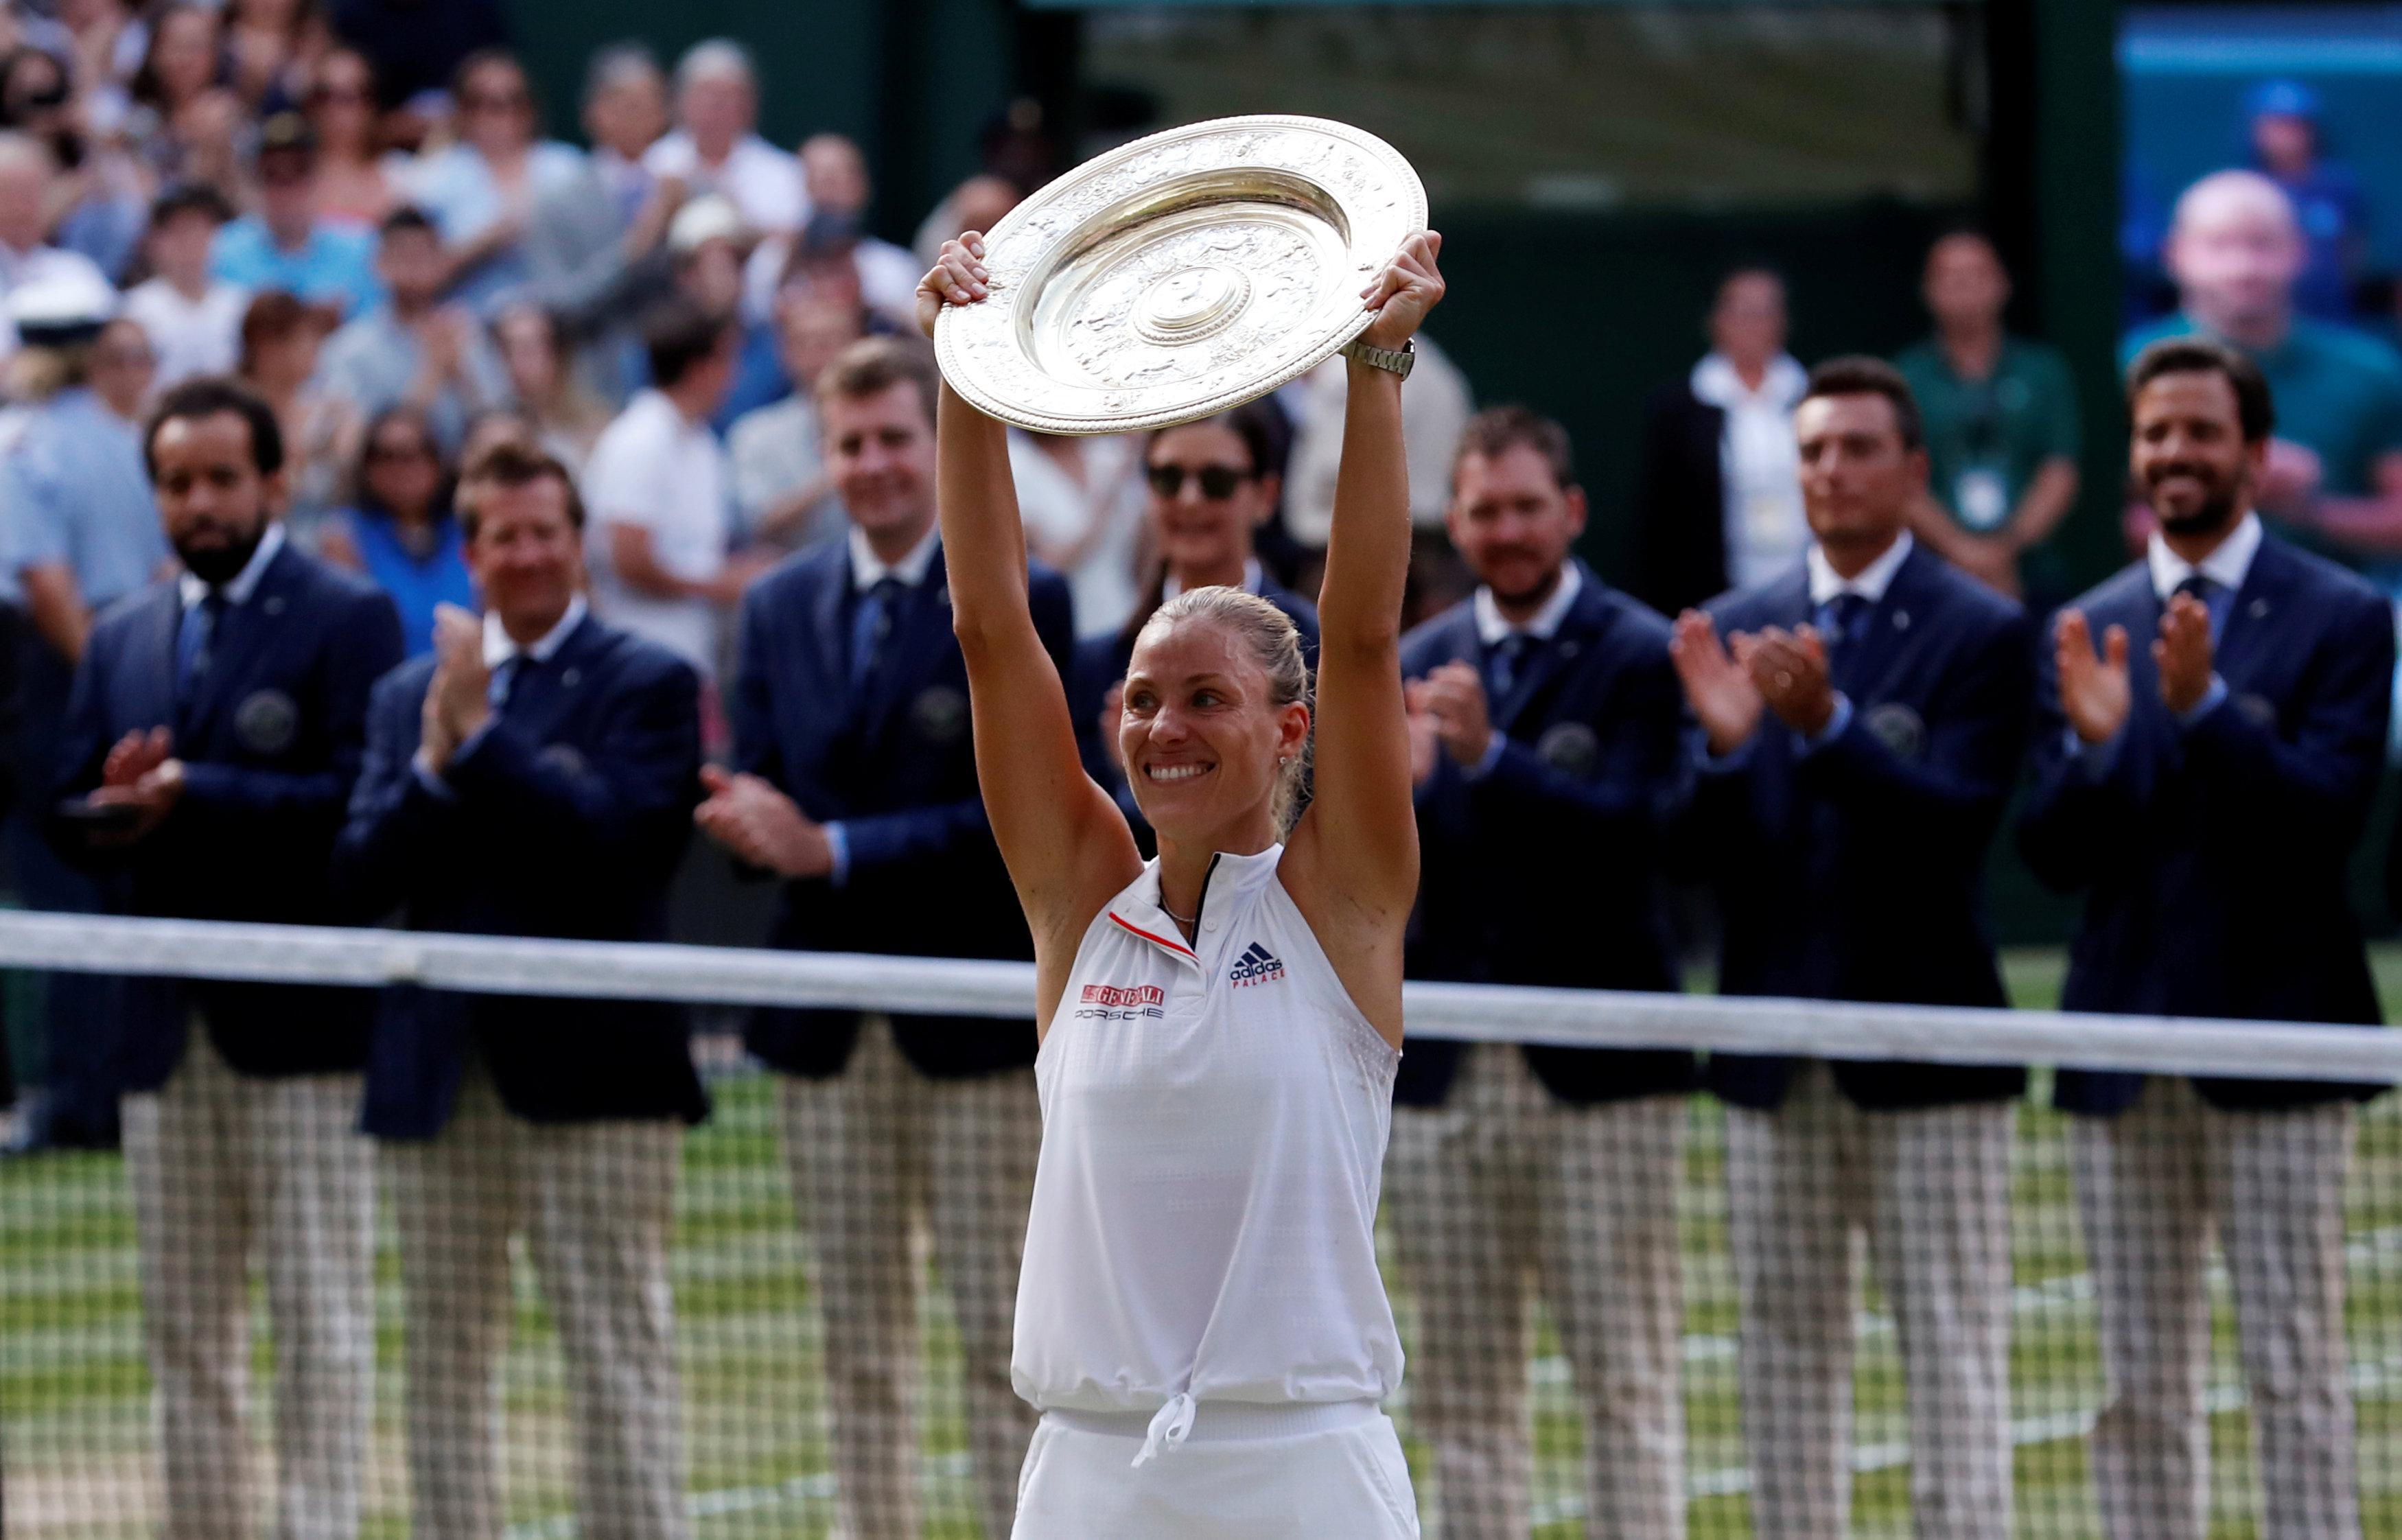 Angelique Kerber is Wimbledon champion after beating Serena Williams